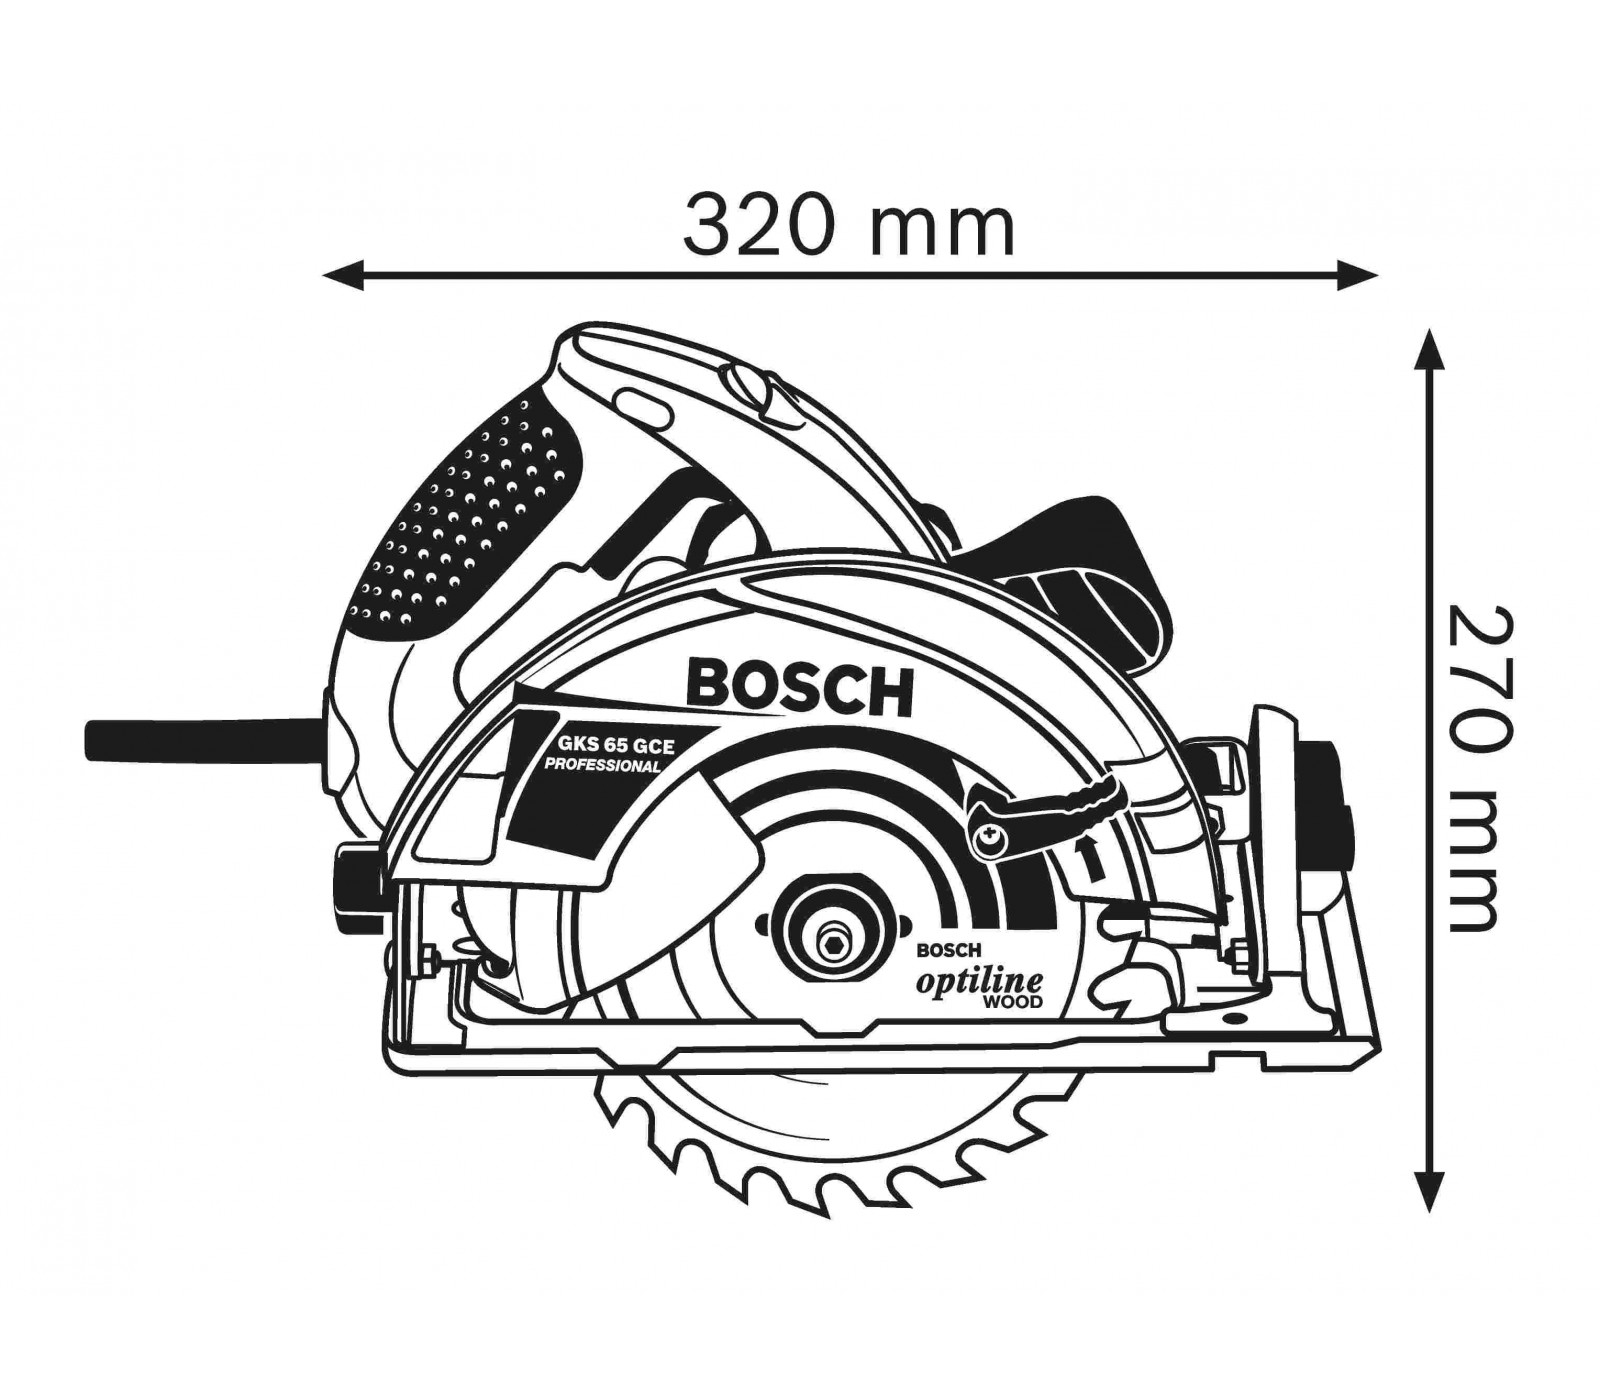 Hand Held Circular Saw Bosch Gks 65 Gce 190 Mm 1800 W Carrying Case L Boxx 238